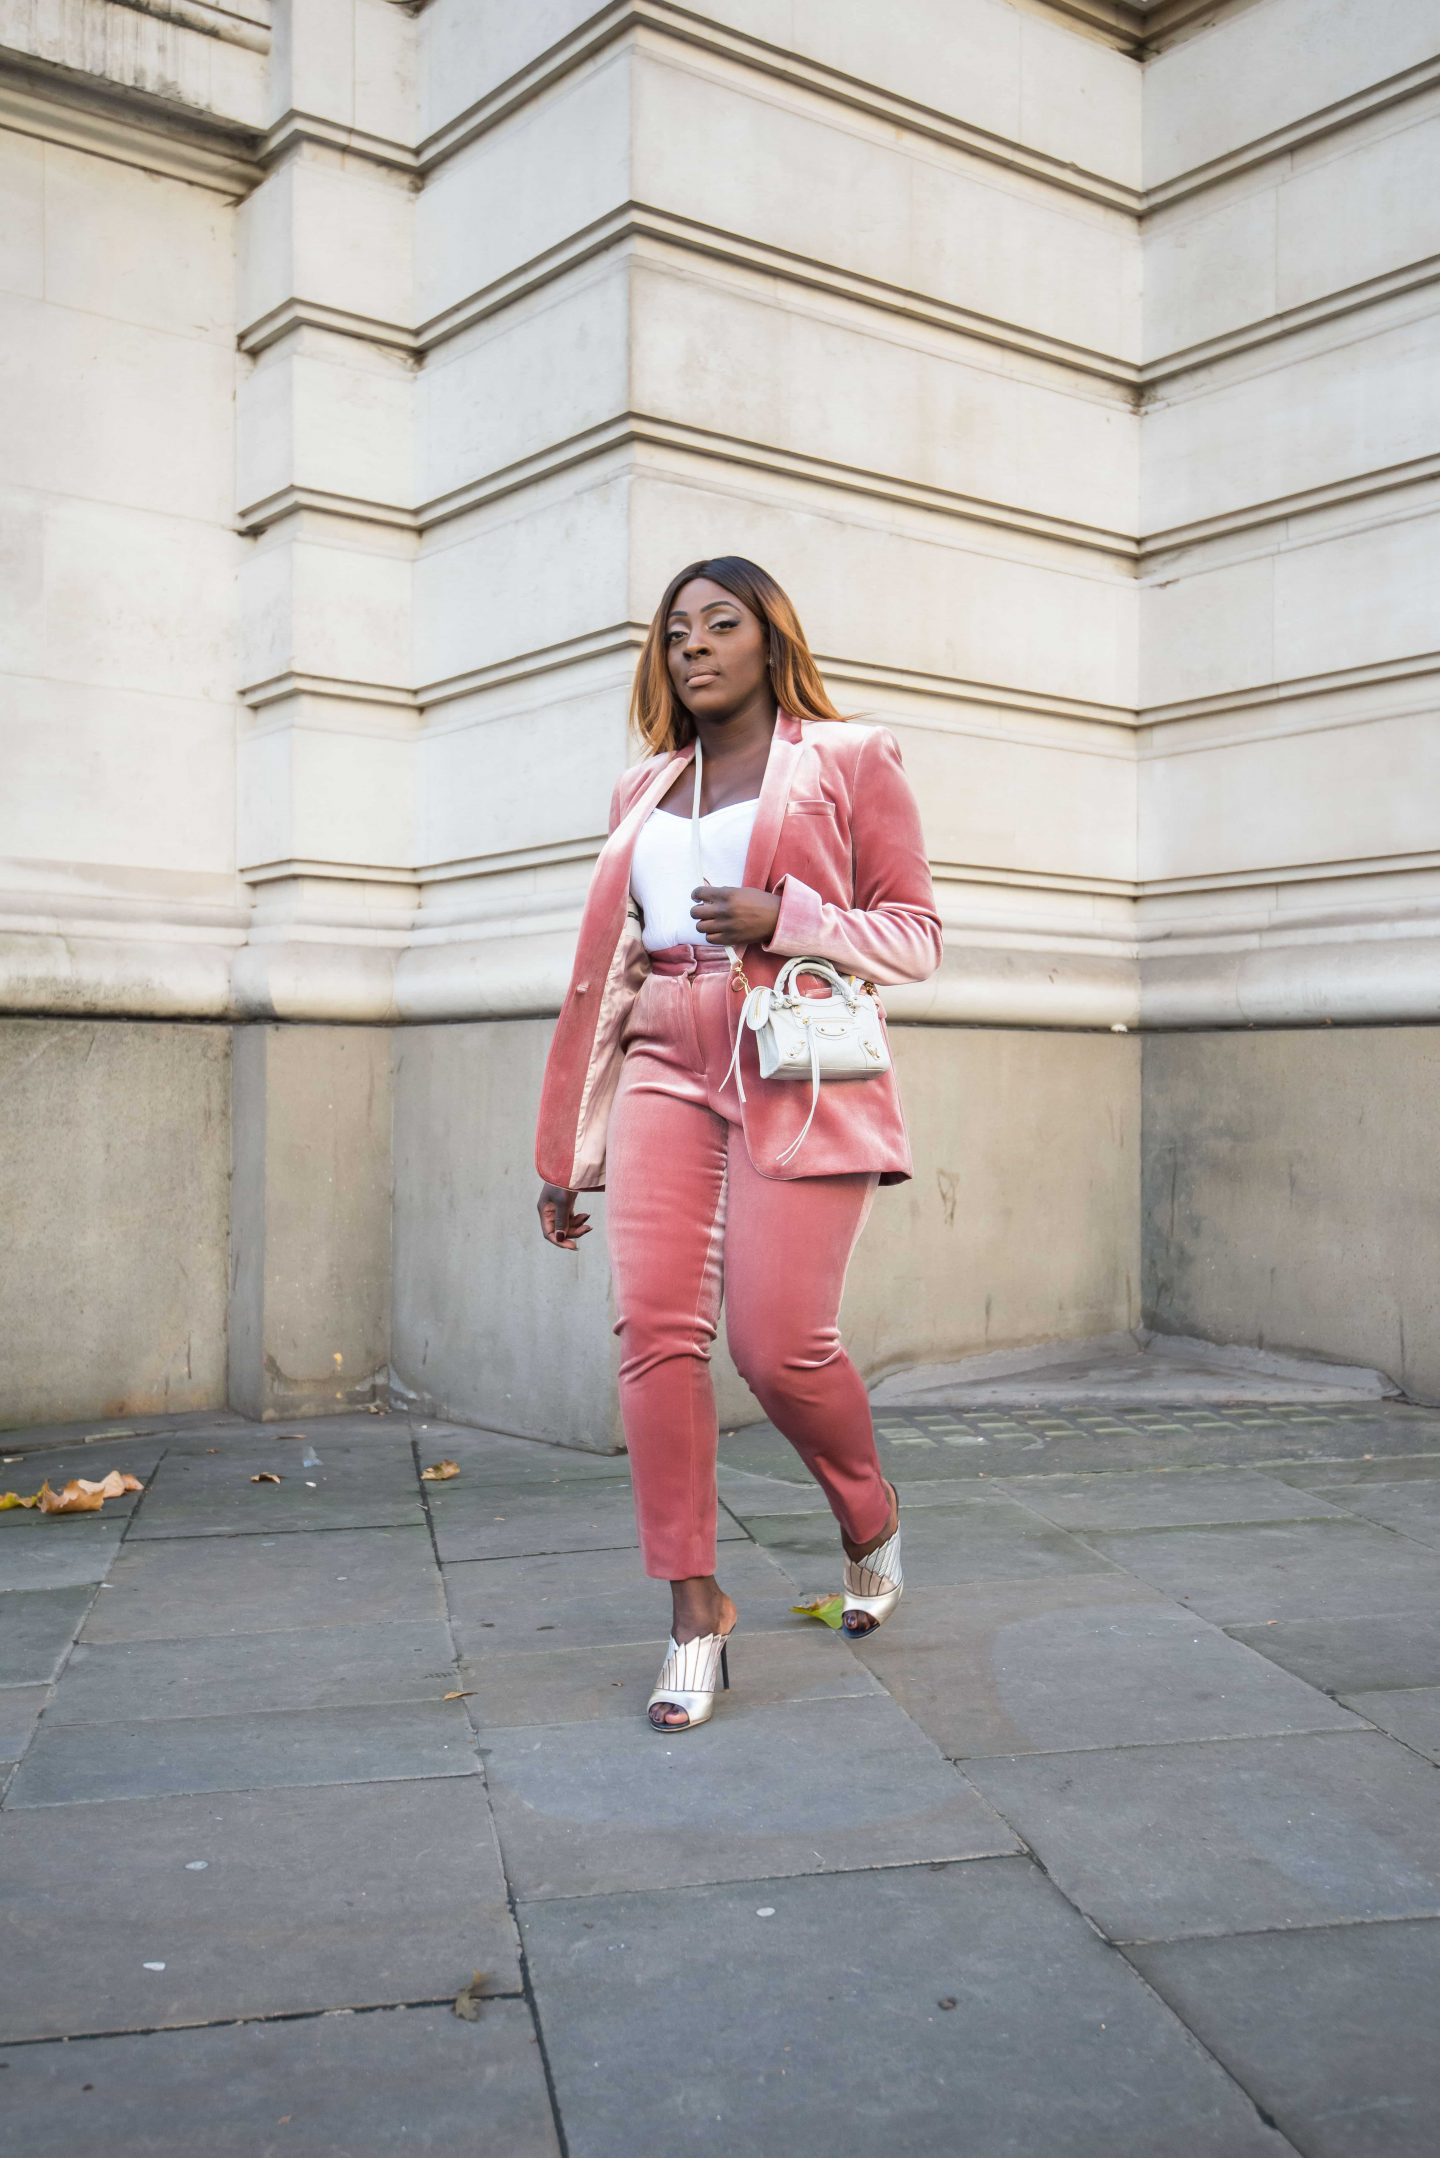 How to Style the Balenciaga Mini Bag - belenciaga city bag -top shop velvet suit - malone souliers donna metalic mules - Style and the Sass